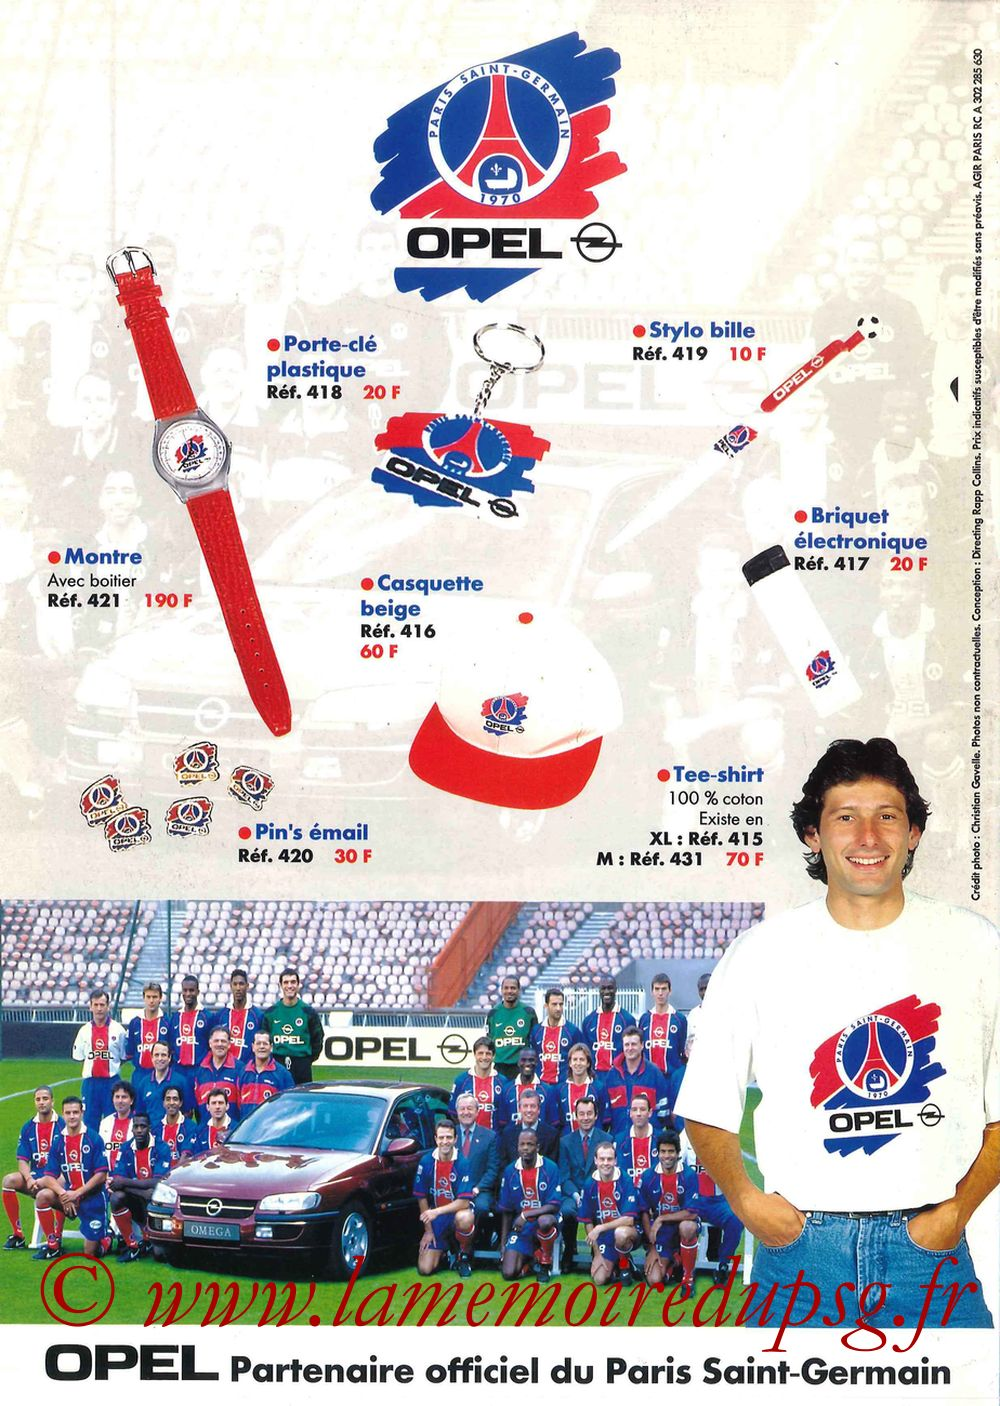 Catalogue PSG - 1996-97 - Pages 20